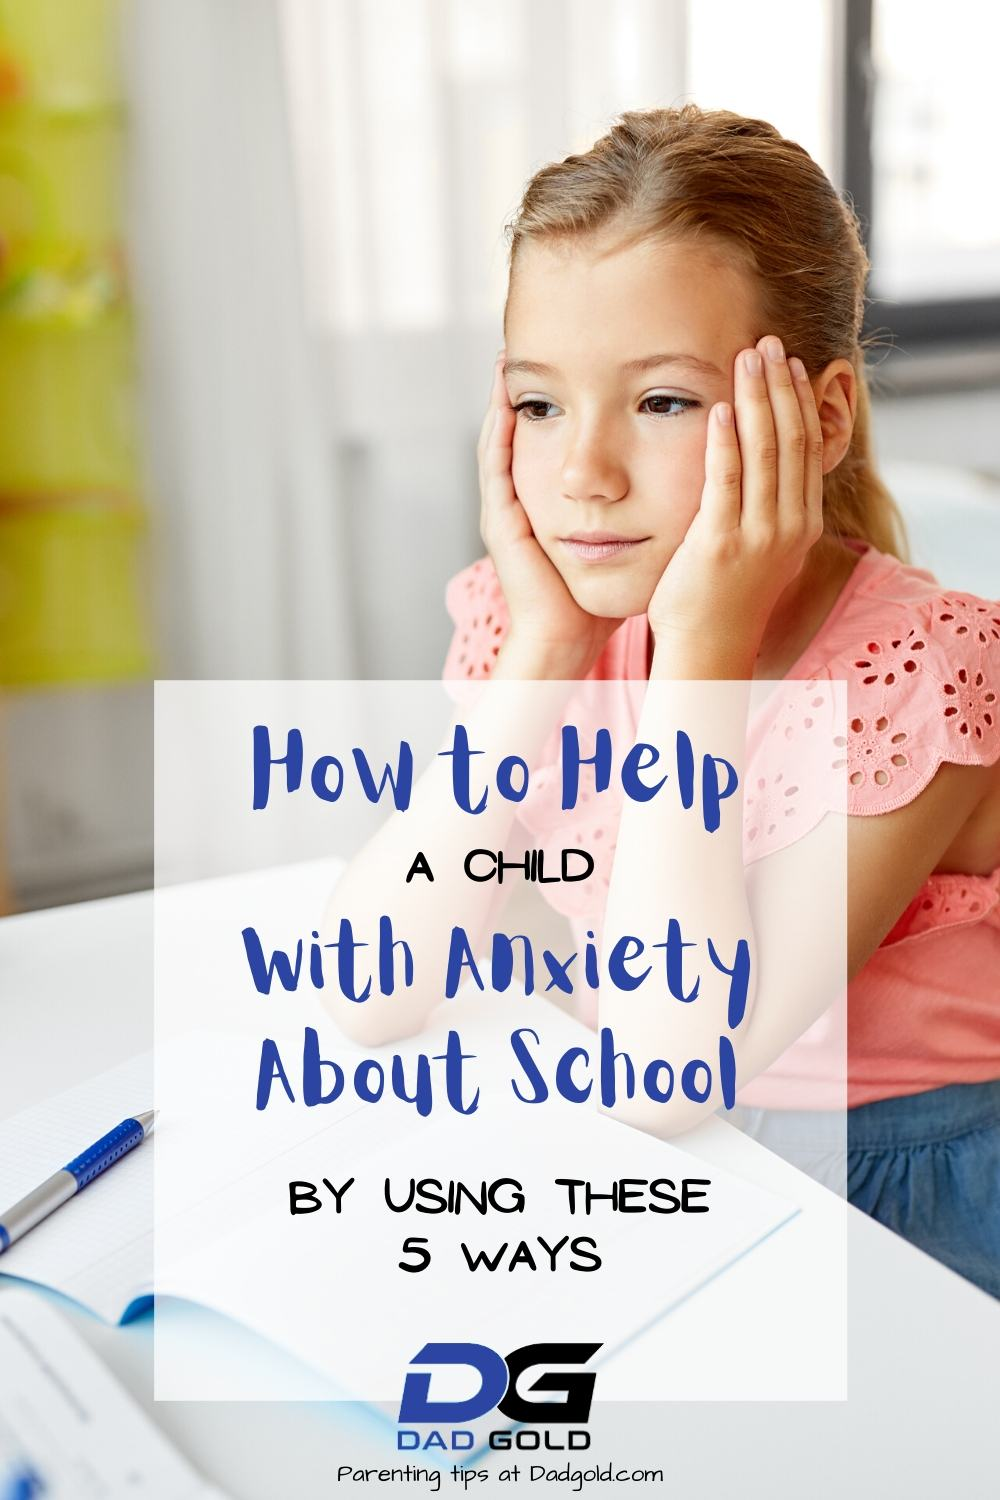 How To Help A Child With Anxiety About School (1)